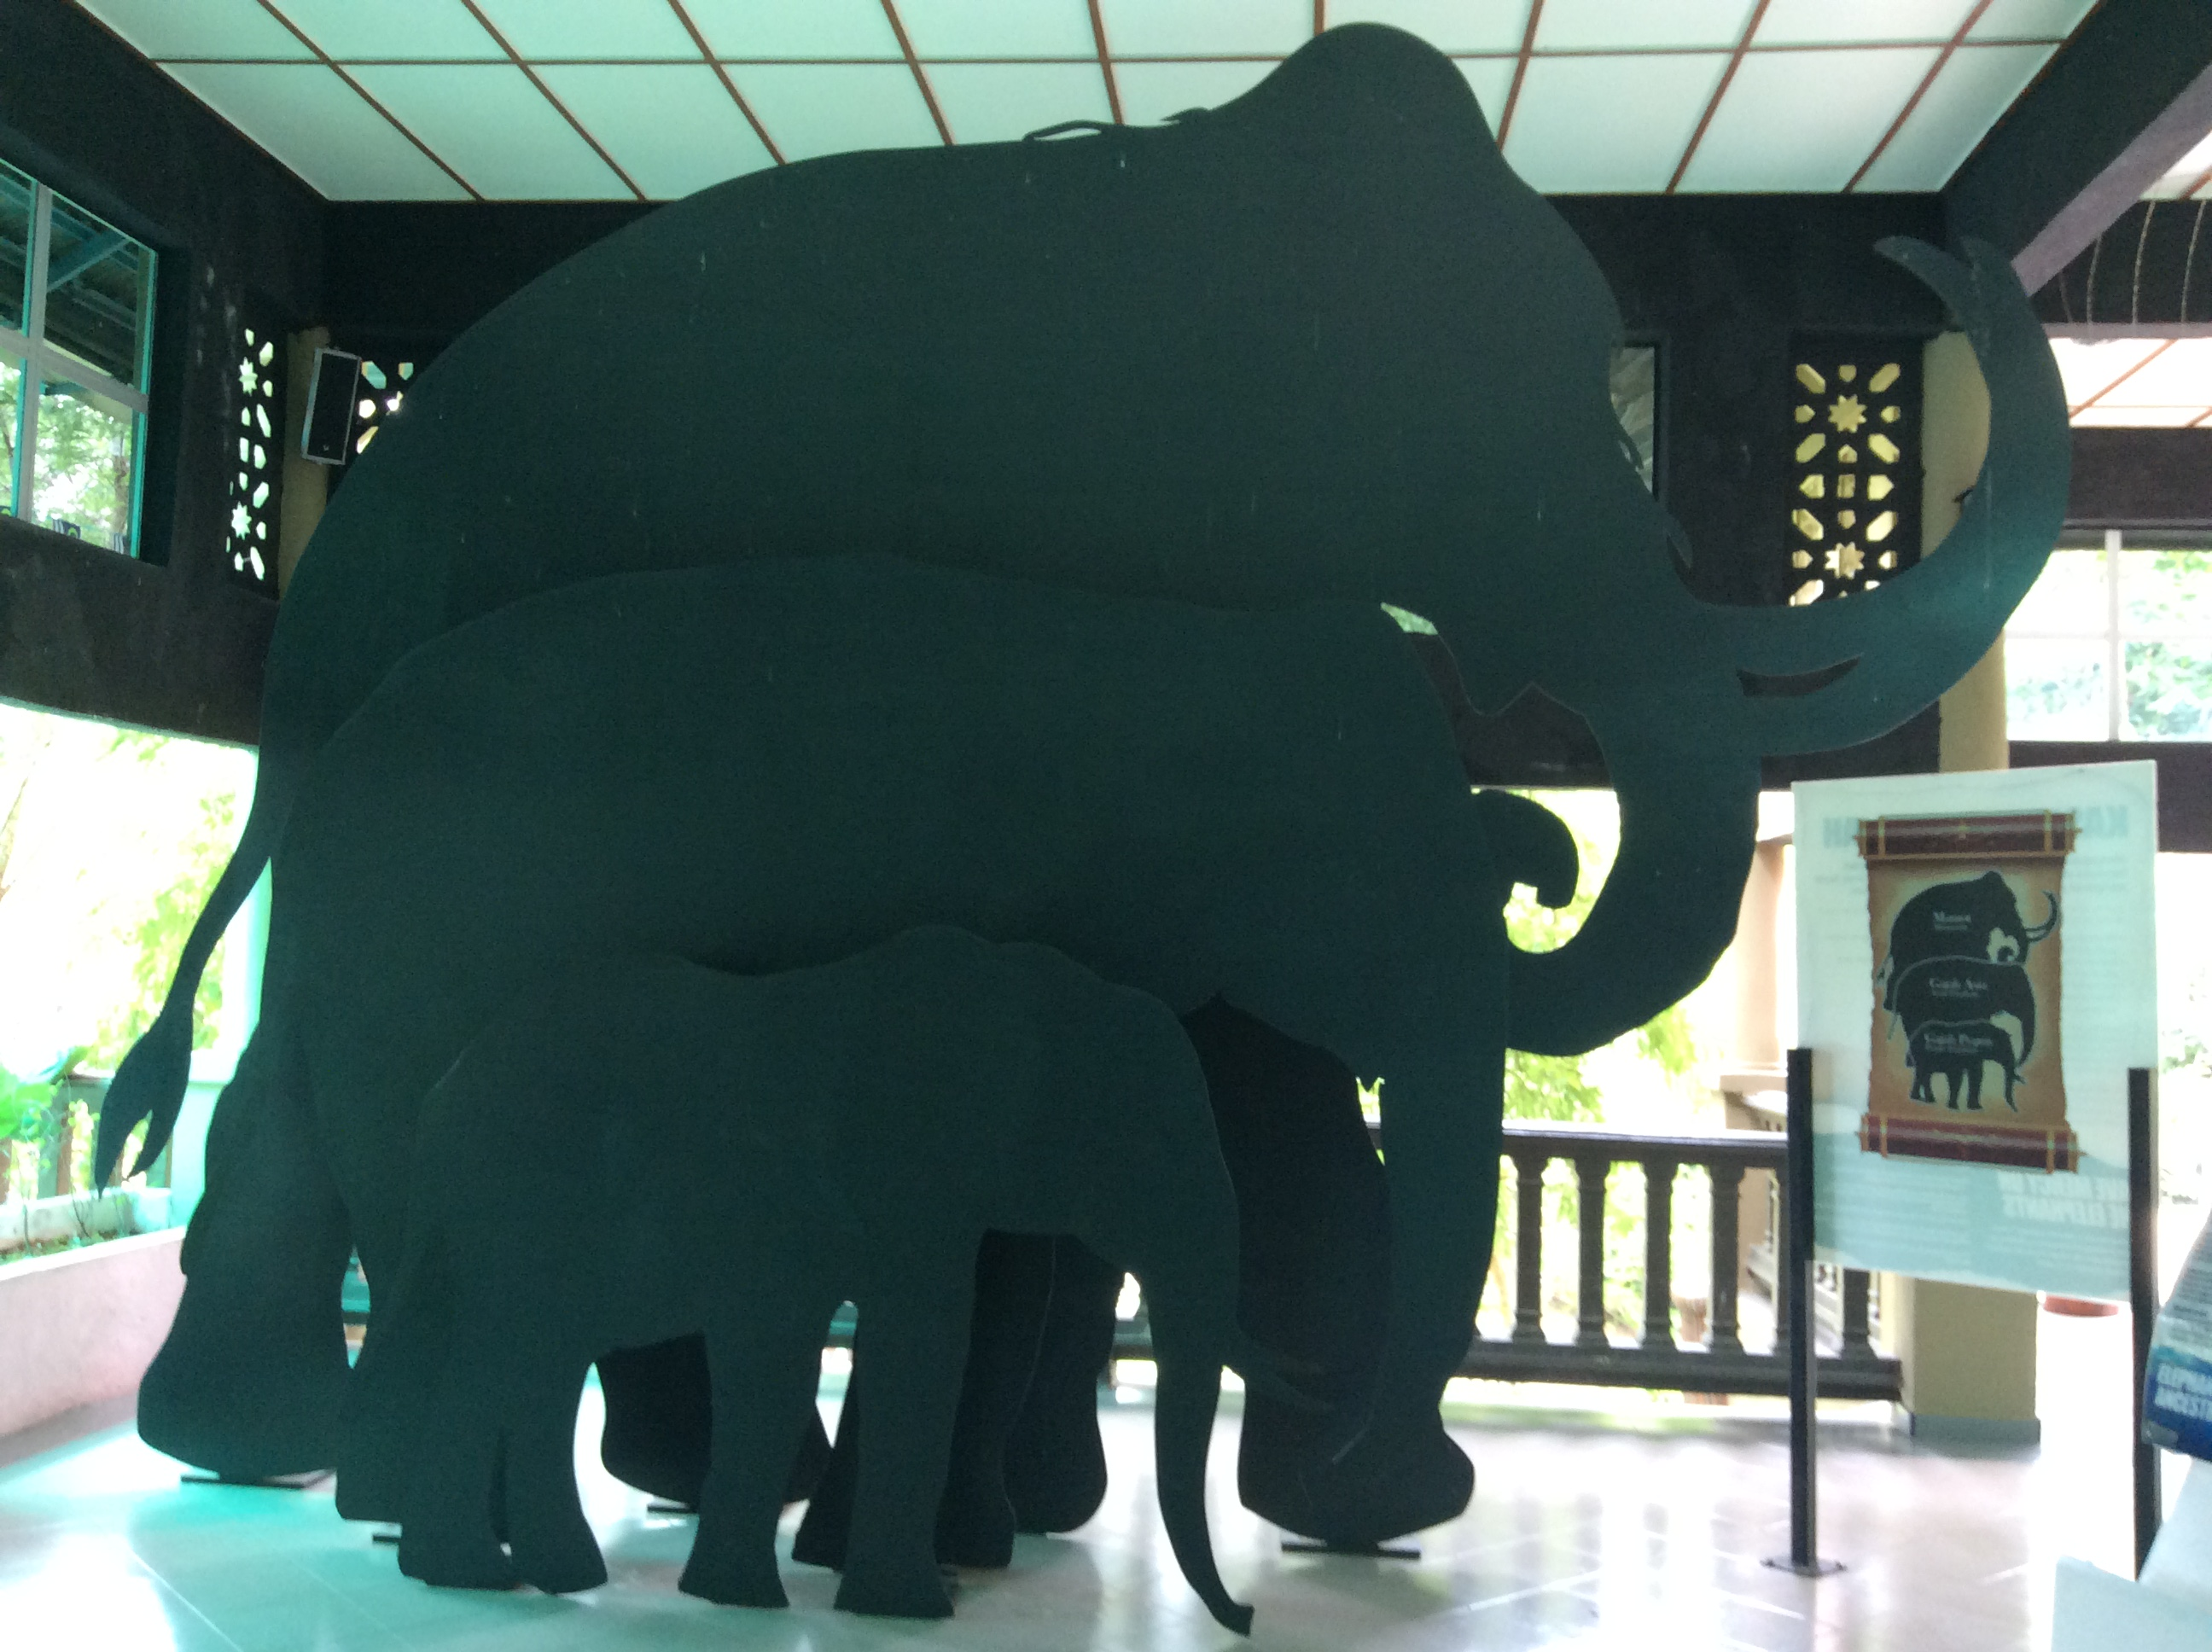 national-elephant-conservation-centre-kuala-gandah-museum-1